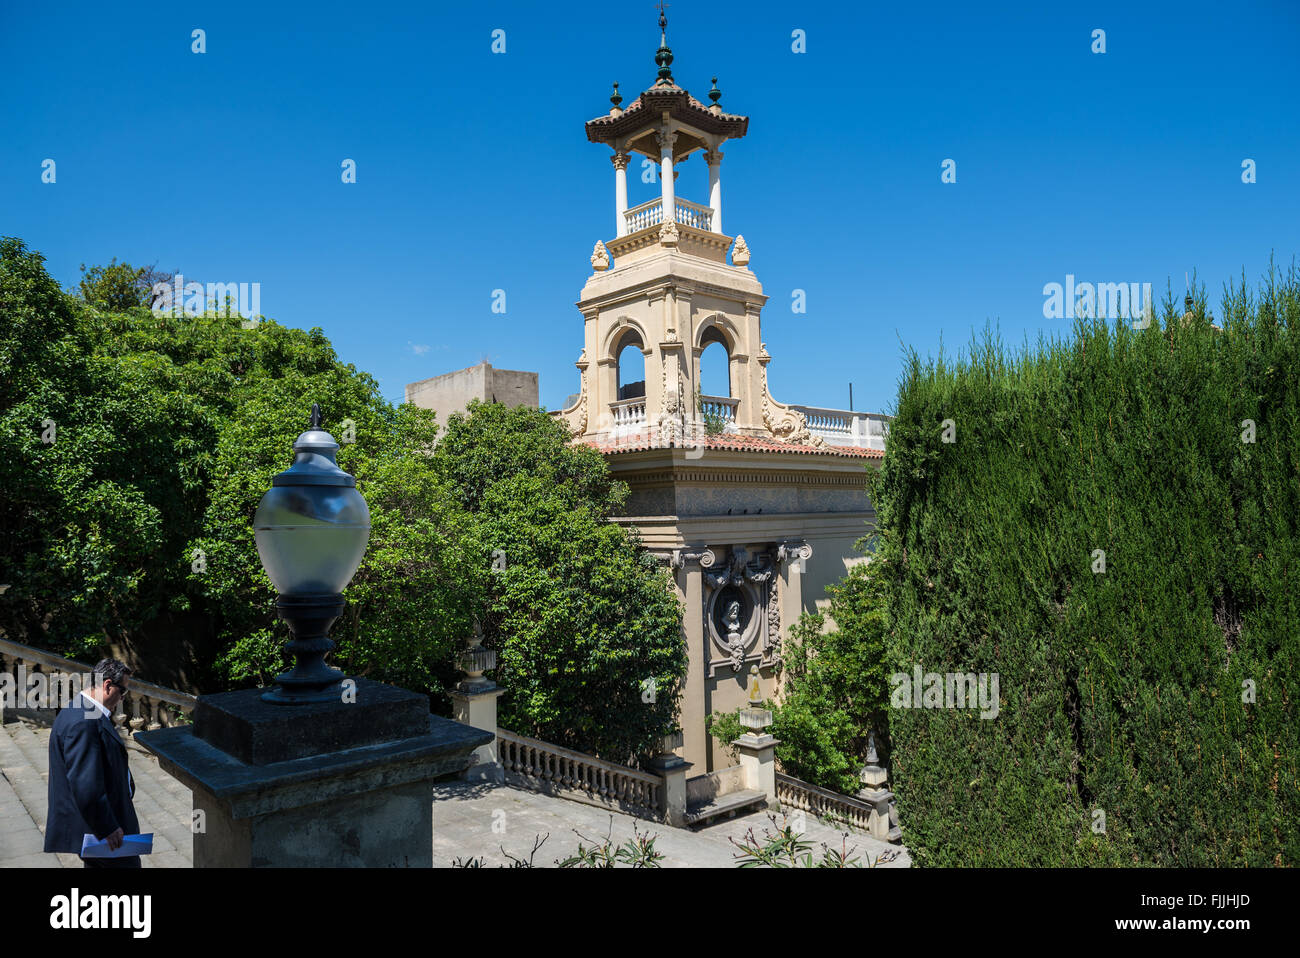 Victoria Eugenia Palace in Barcelona, Spain Stock Photo